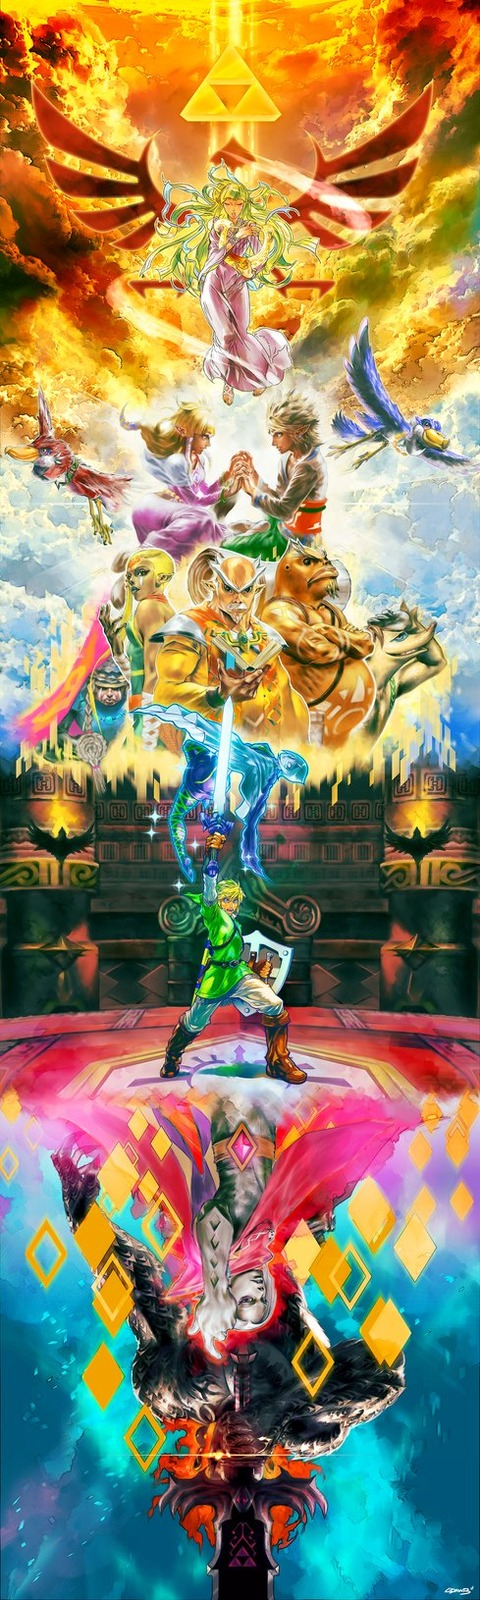 loz_skyward_sword_by_l_dawb-d4gp8h2